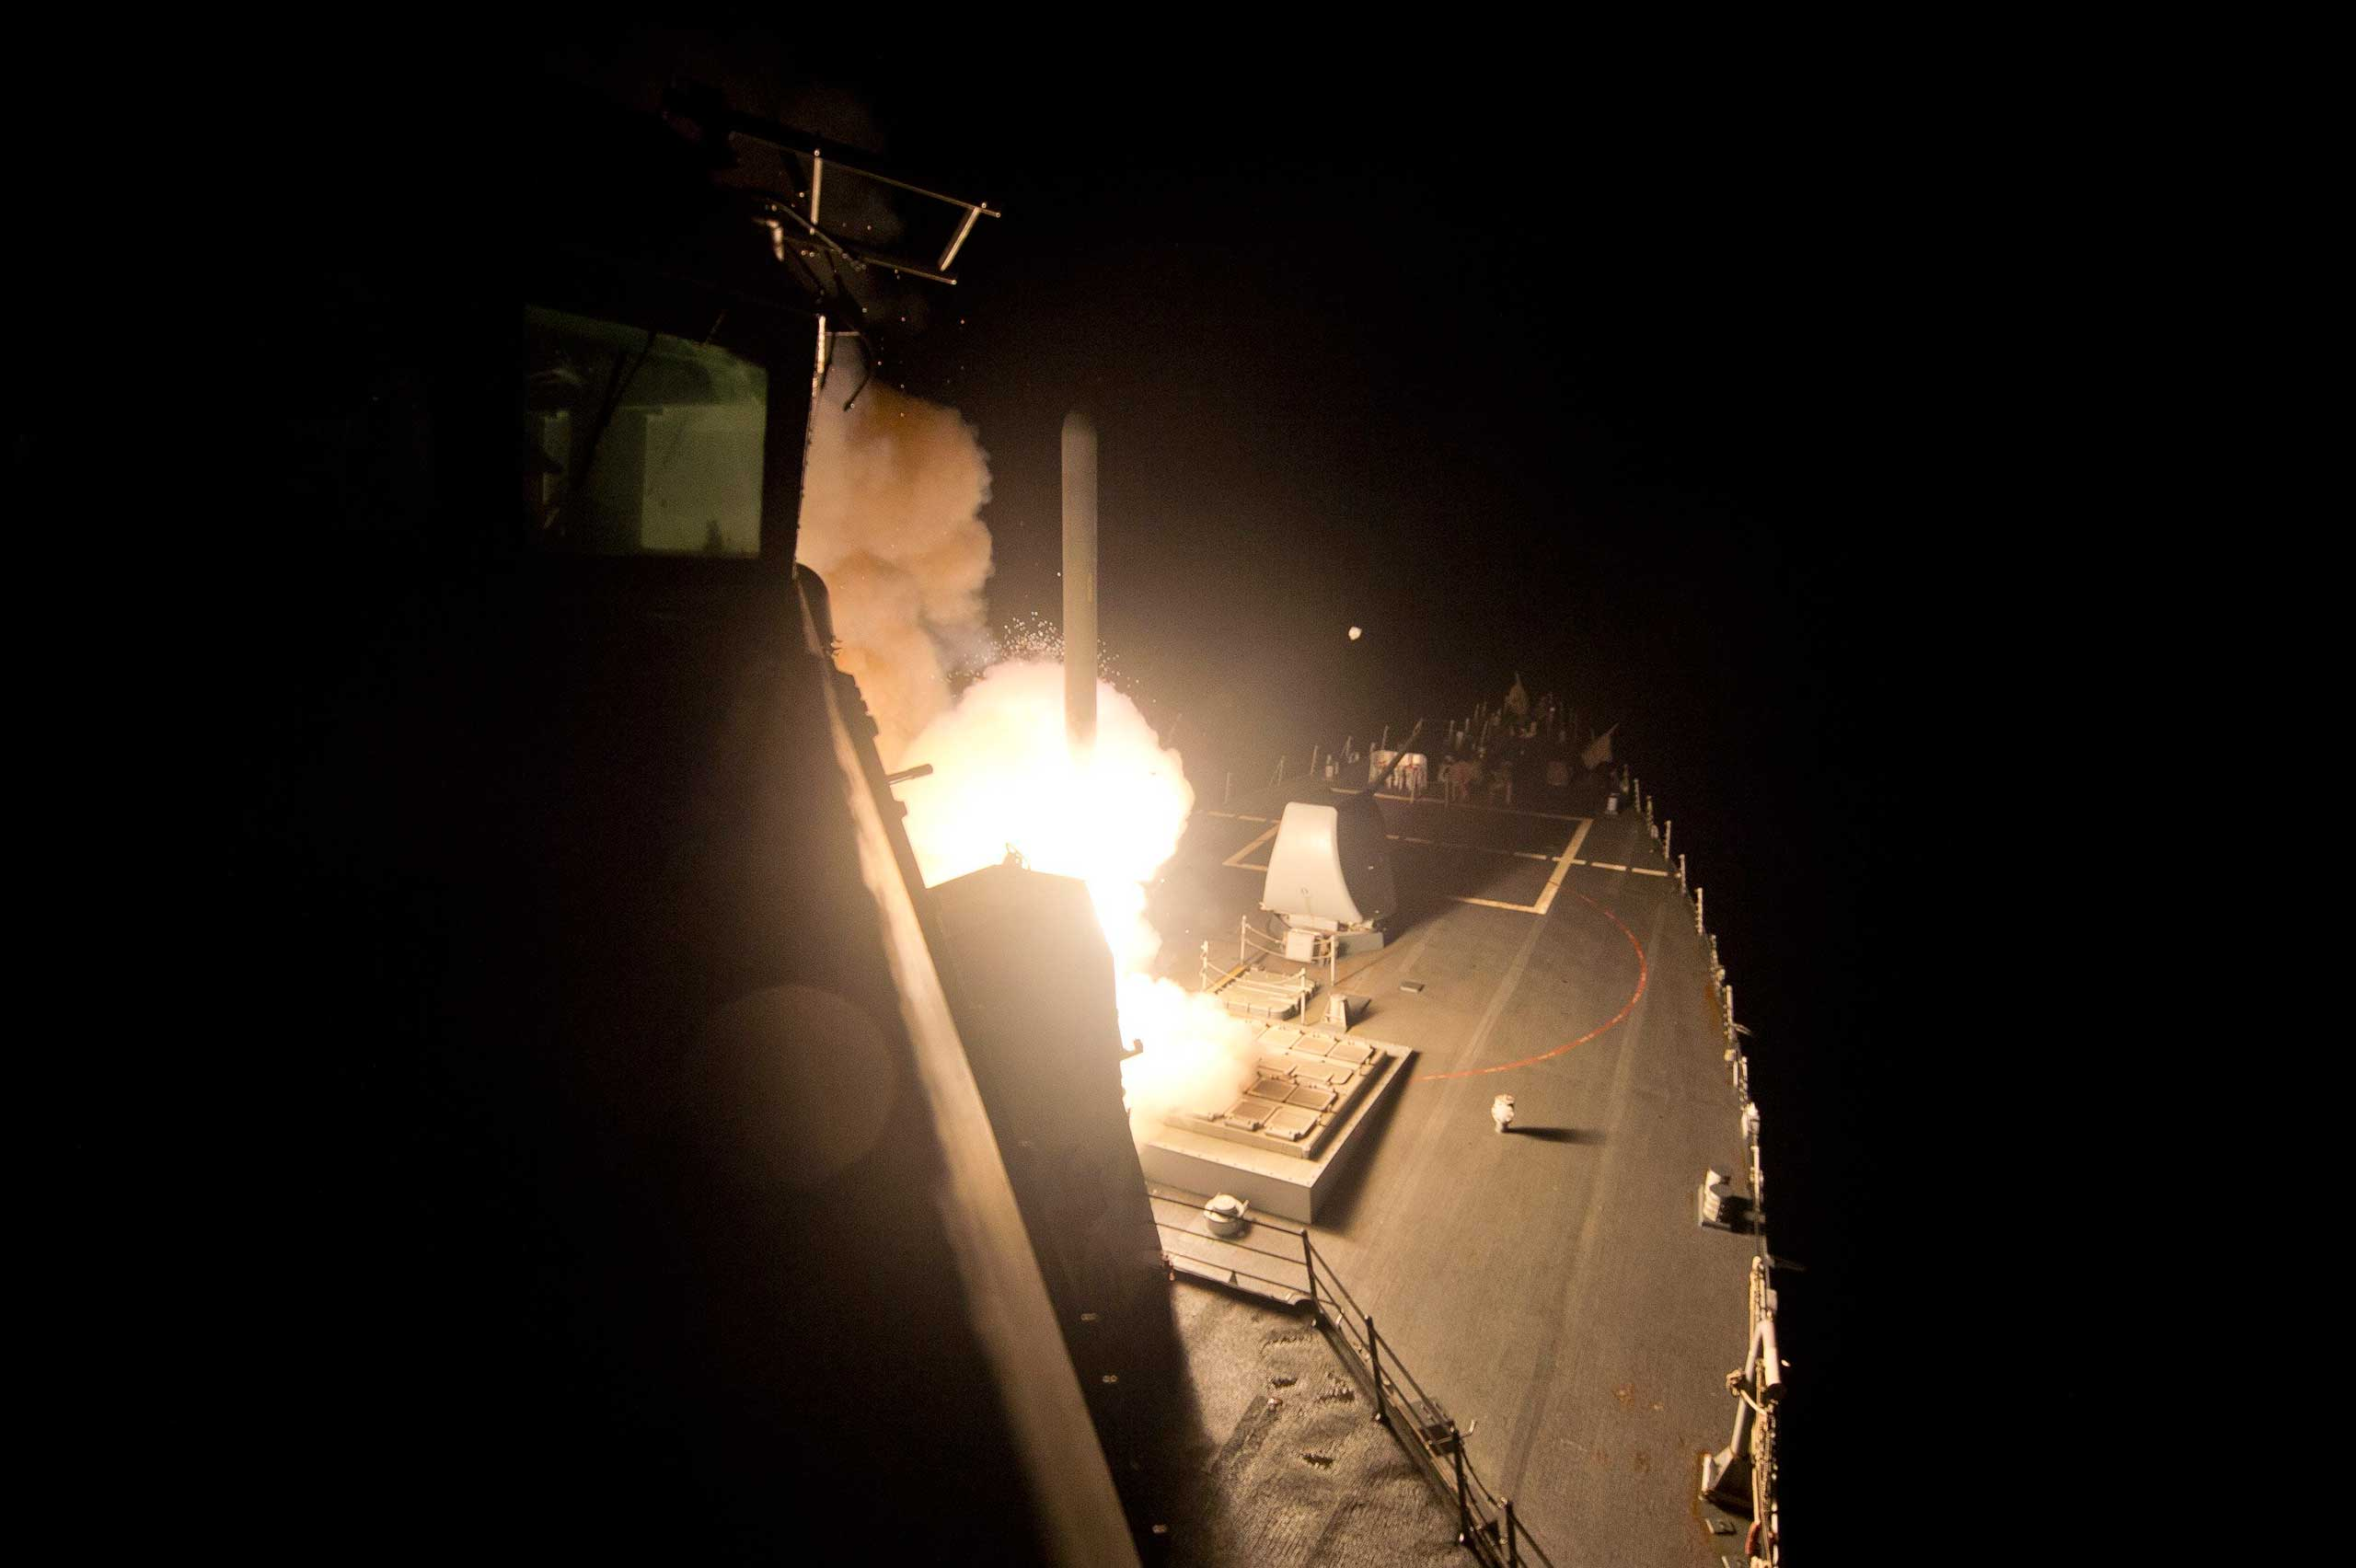 Sept. 23, 2014. A Tomahawk cruise missile is launched against ISIL targets from the US Navy guided-missile destroyer USS Arleigh Burke, in the Red Sea.